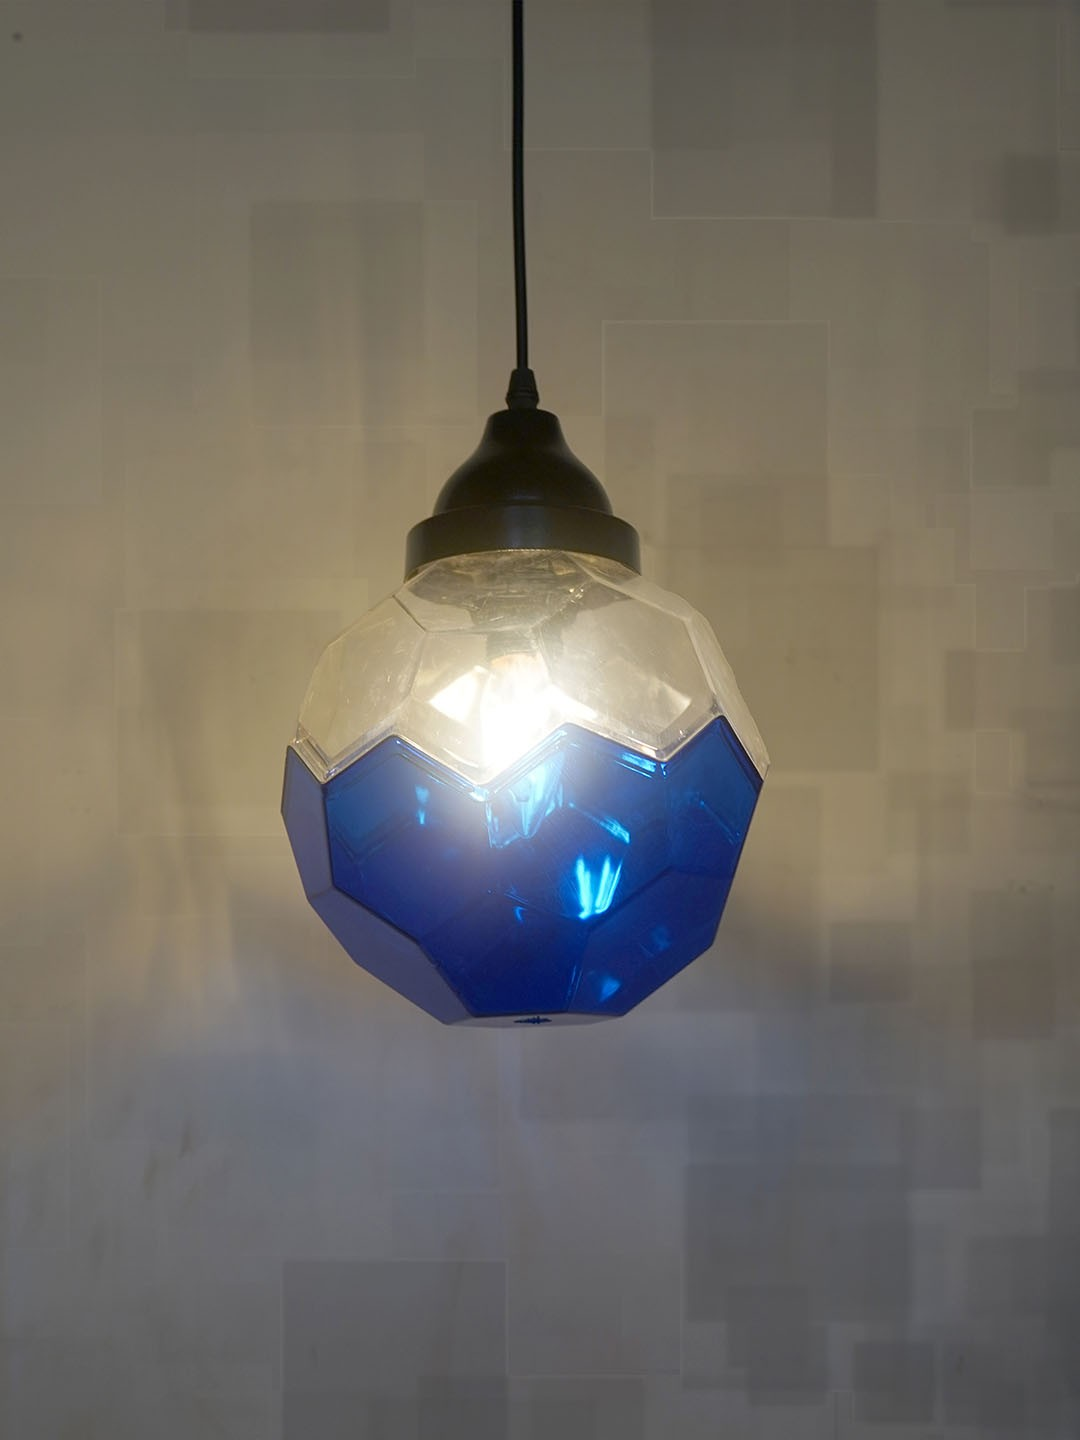 Football Shaped Acrylic Hanging Light in Blue and Clear Color